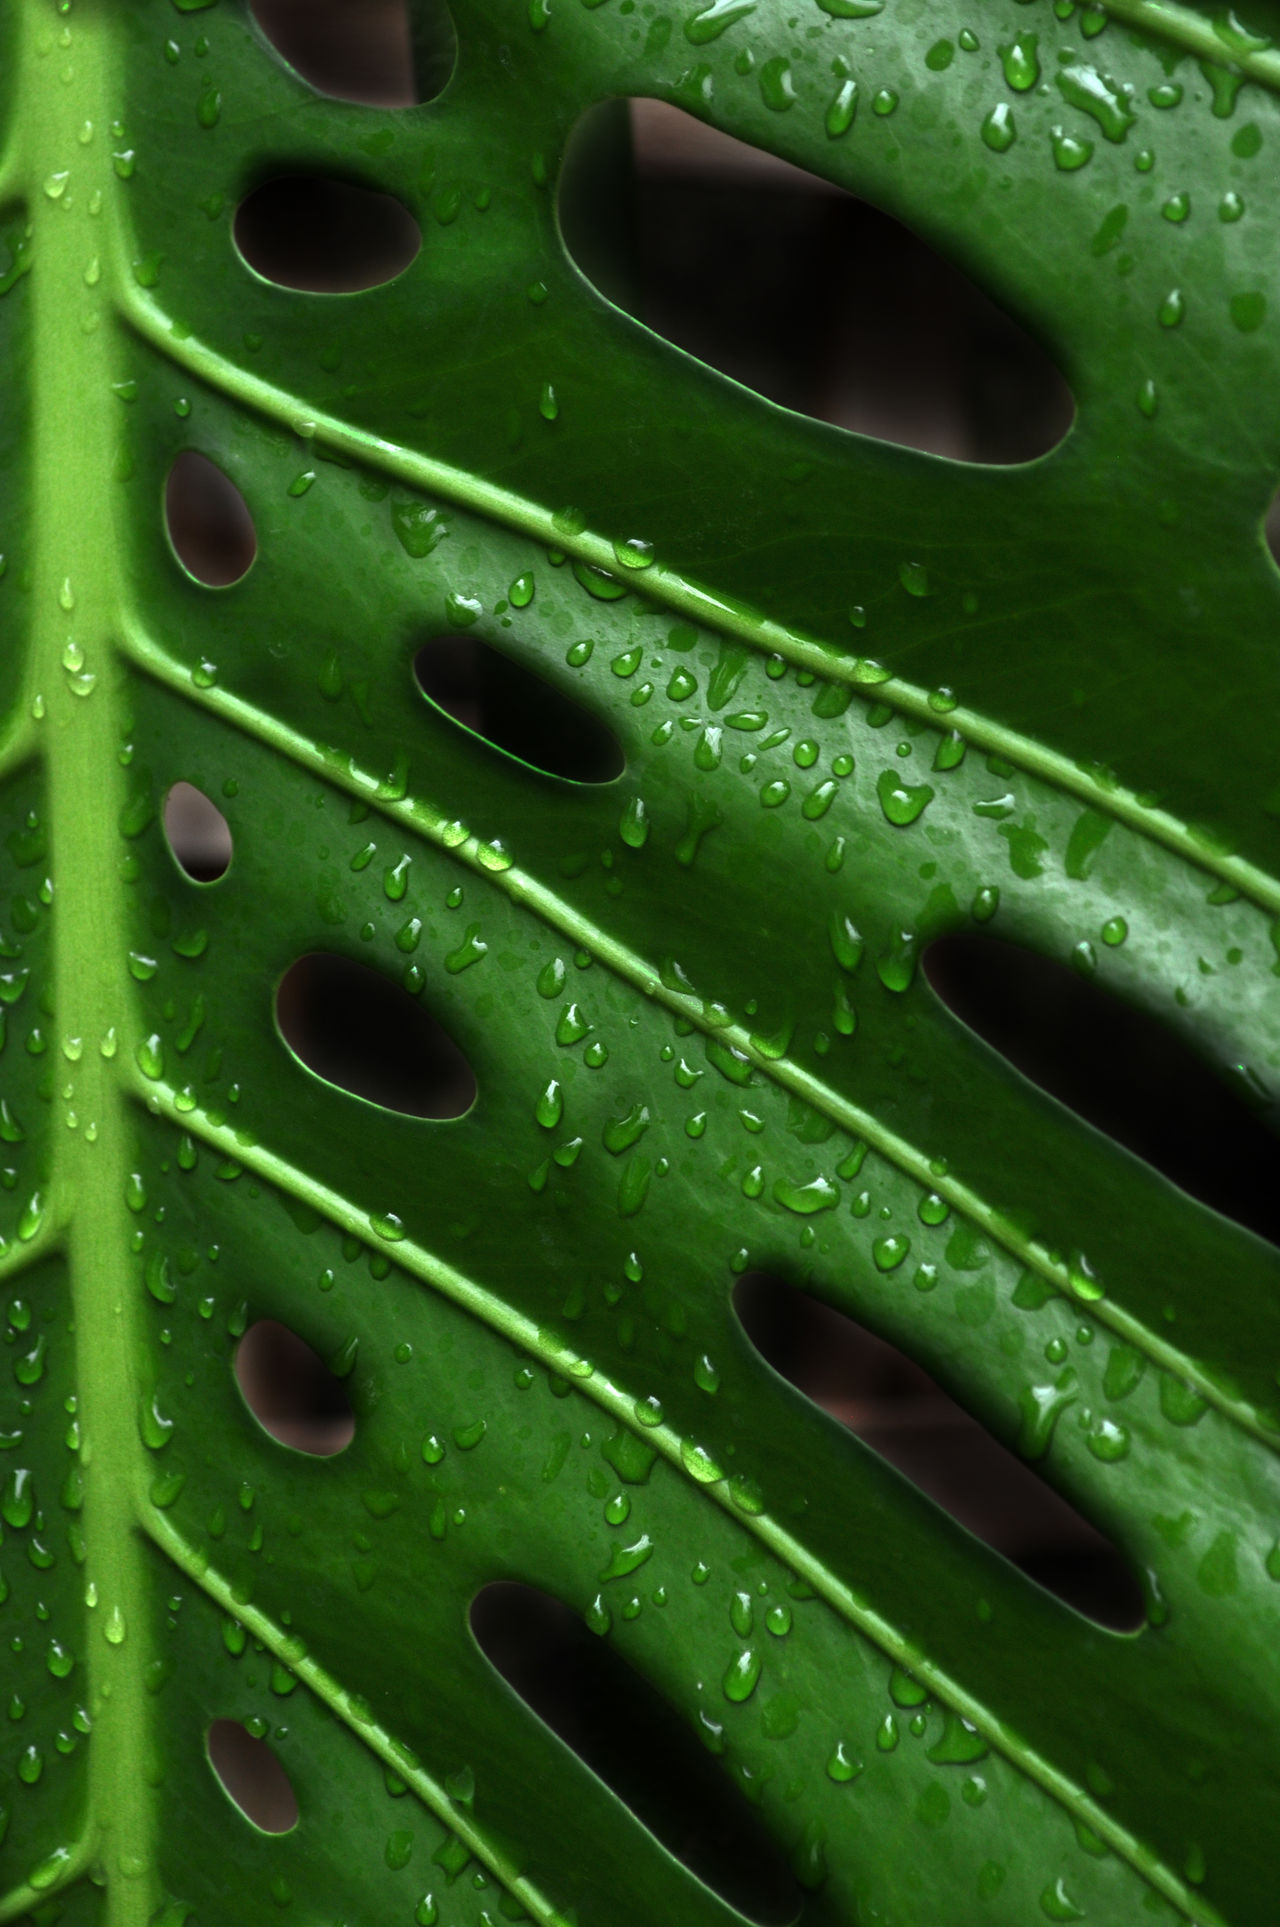 Backgrounds Close-up Day Detail Drop Full Frame Green Green Color Leaf Metal Nature No People Outdoors Pattern Swiss Cheese Plant Textured  Water Wet Natures Diversities Fine Art Photography Colour Of Life Color Palette Maximum Closeness